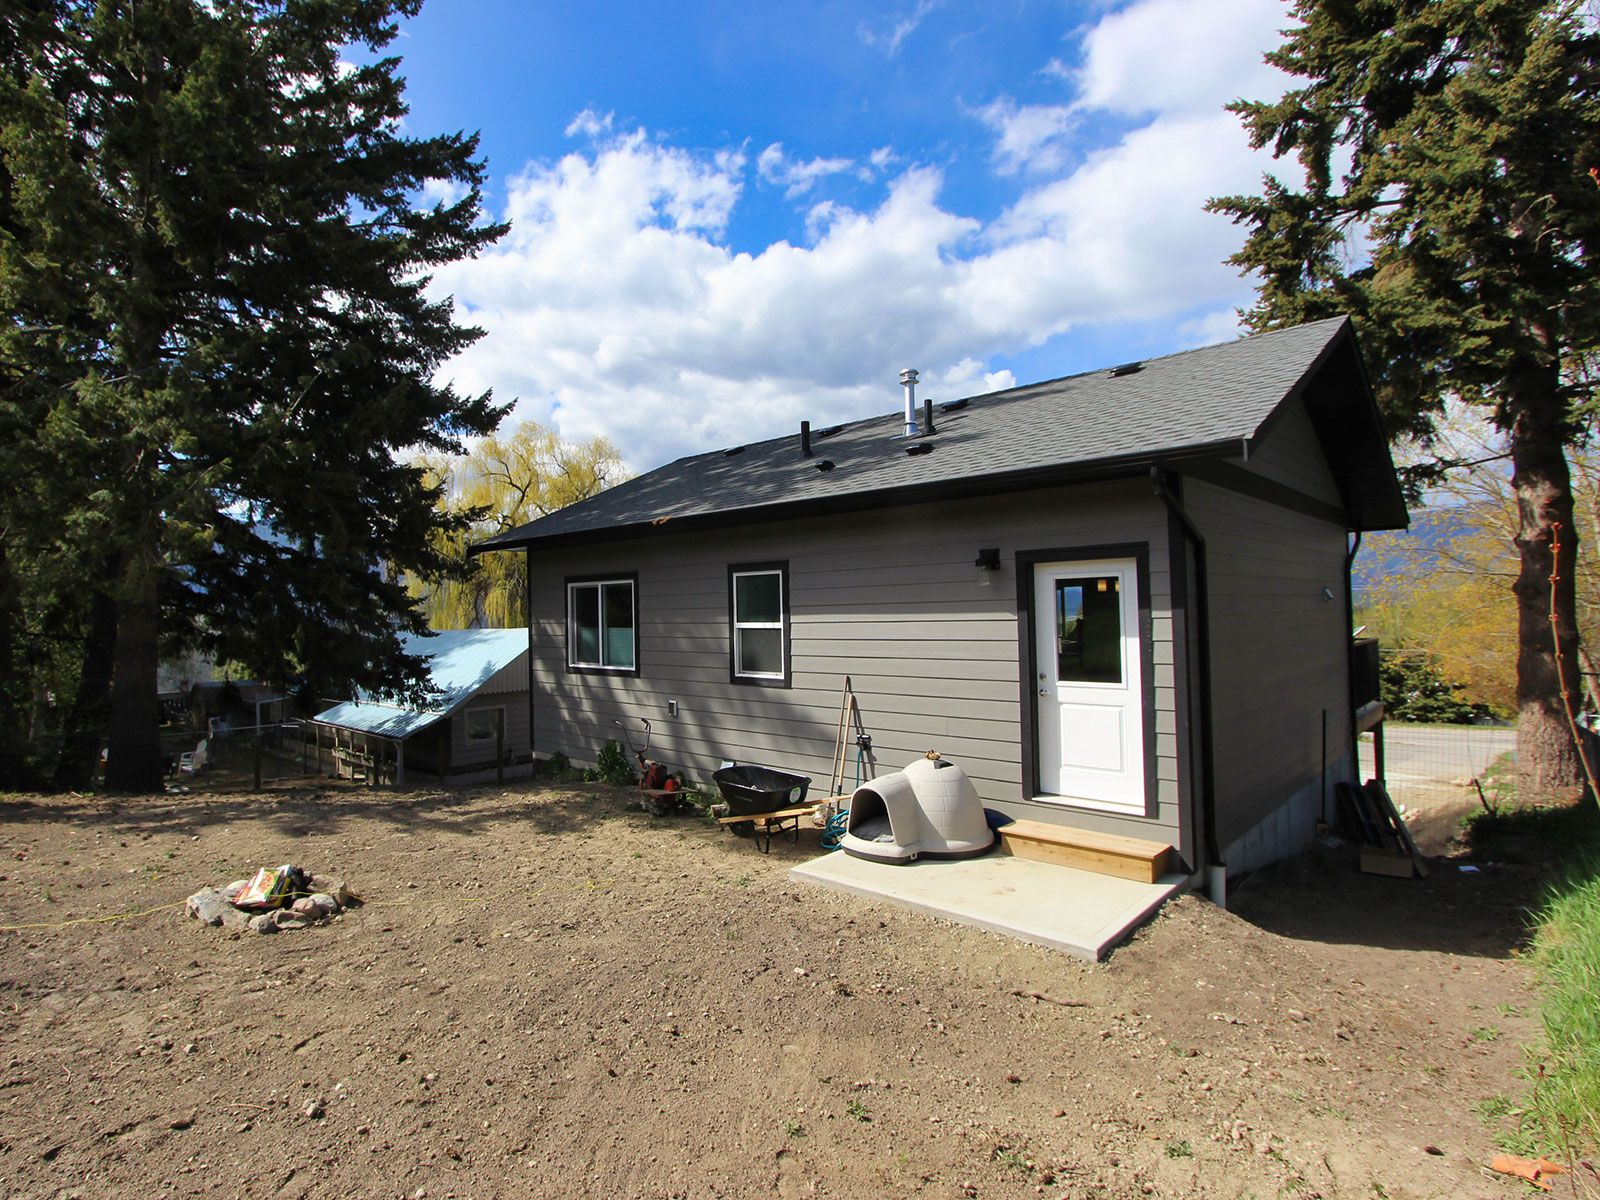 Photo 5: Photos: 1920 SE Okanagan Avenue in Salmon Arm: South East Salmon Arm House for sale : MLS®# 10204567